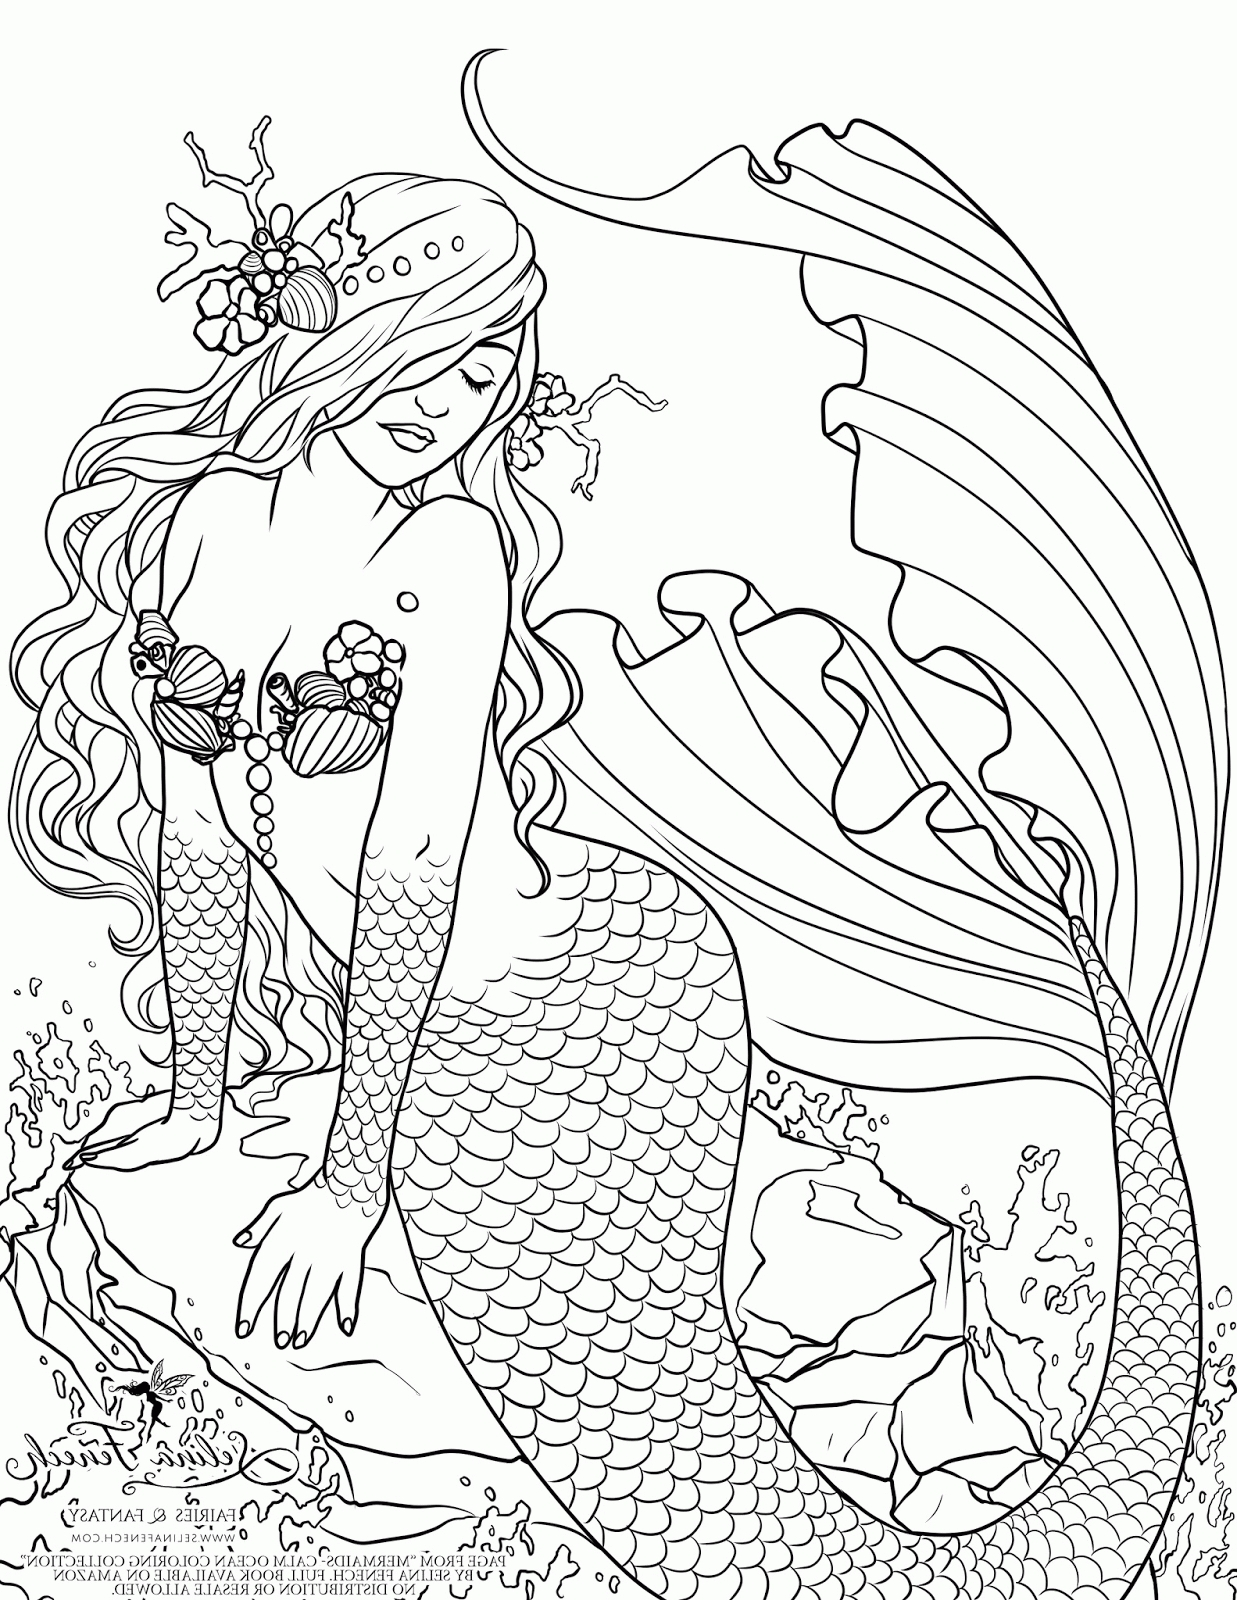 mermaid coloring pages for adults - mermaid coloring pages for adults